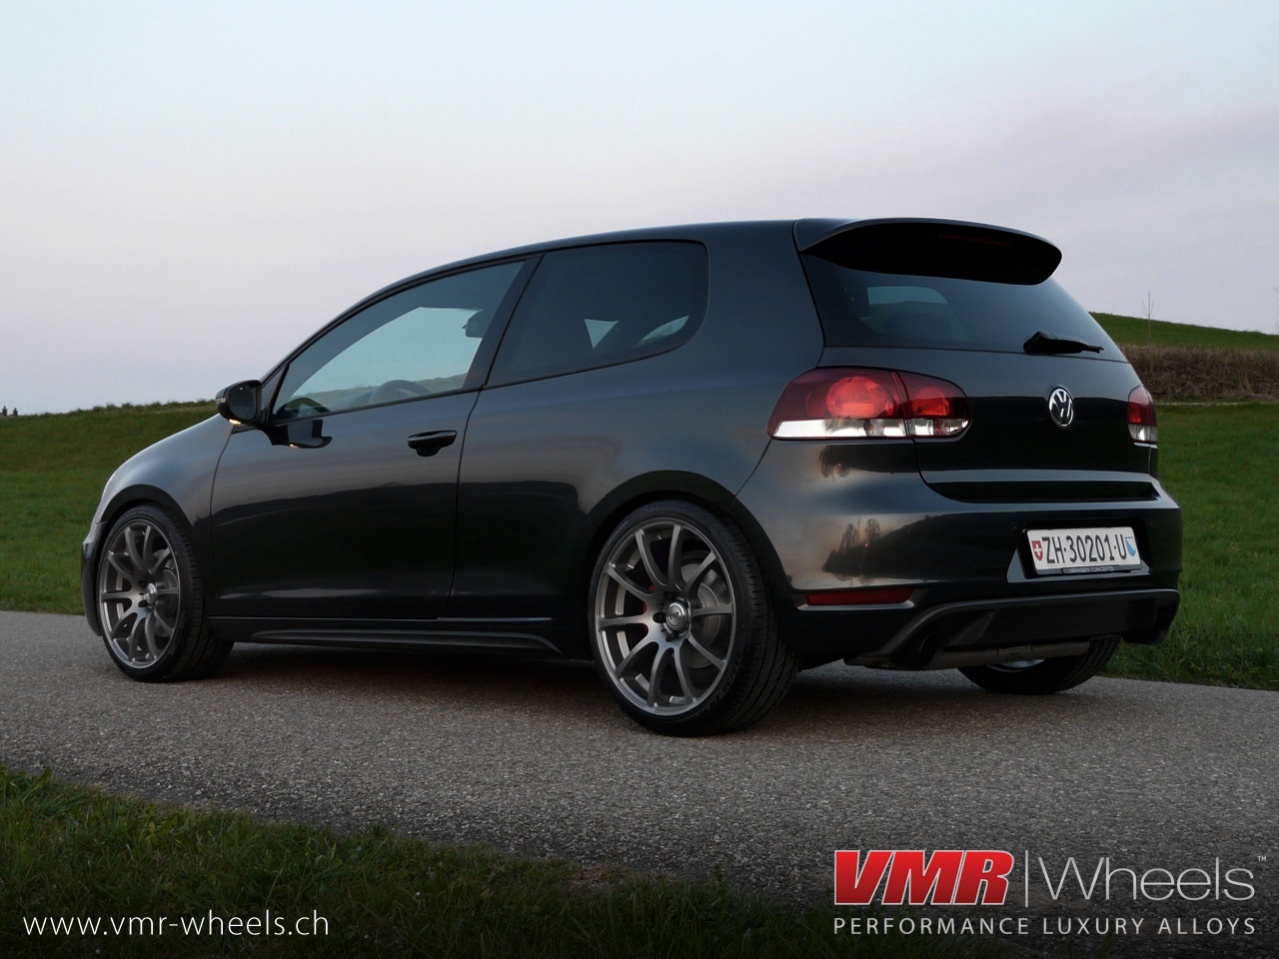 vw gti mkvi forum vw golf r forum vw golf mkvi forum vw gti forum view. Black Bedroom Furniture Sets. Home Design Ideas